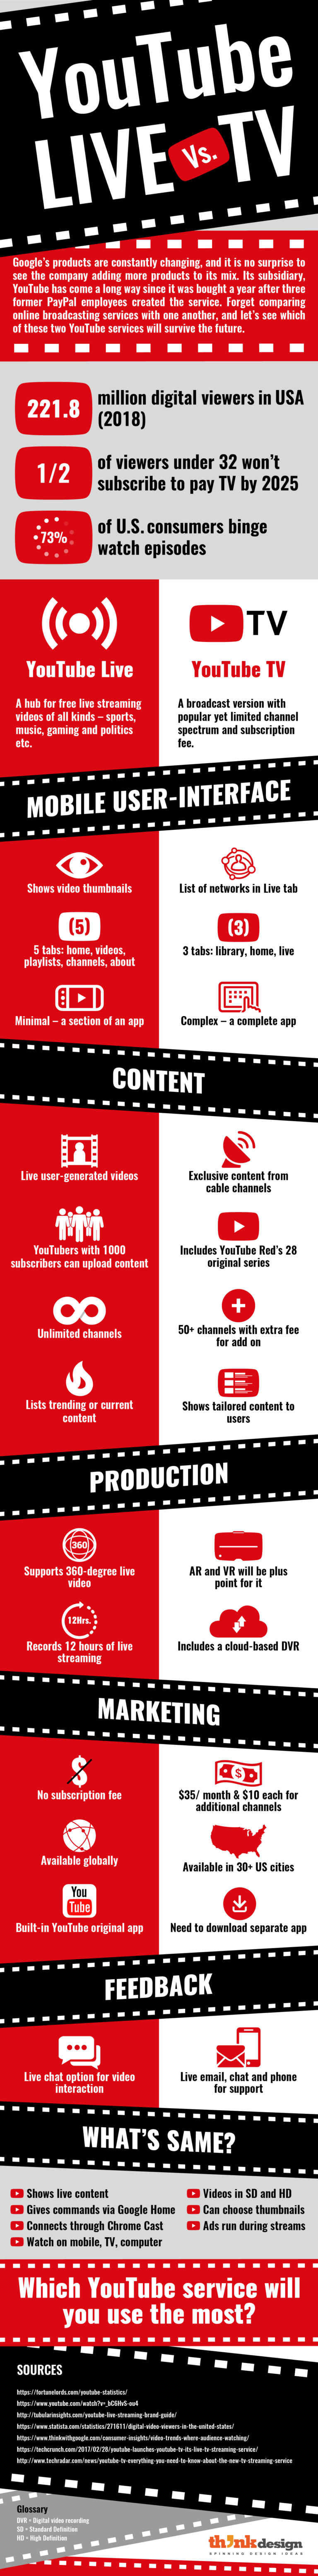 YouTube Live Vs. YouTube TV – Which Will Stand The Test Of Time #infographic